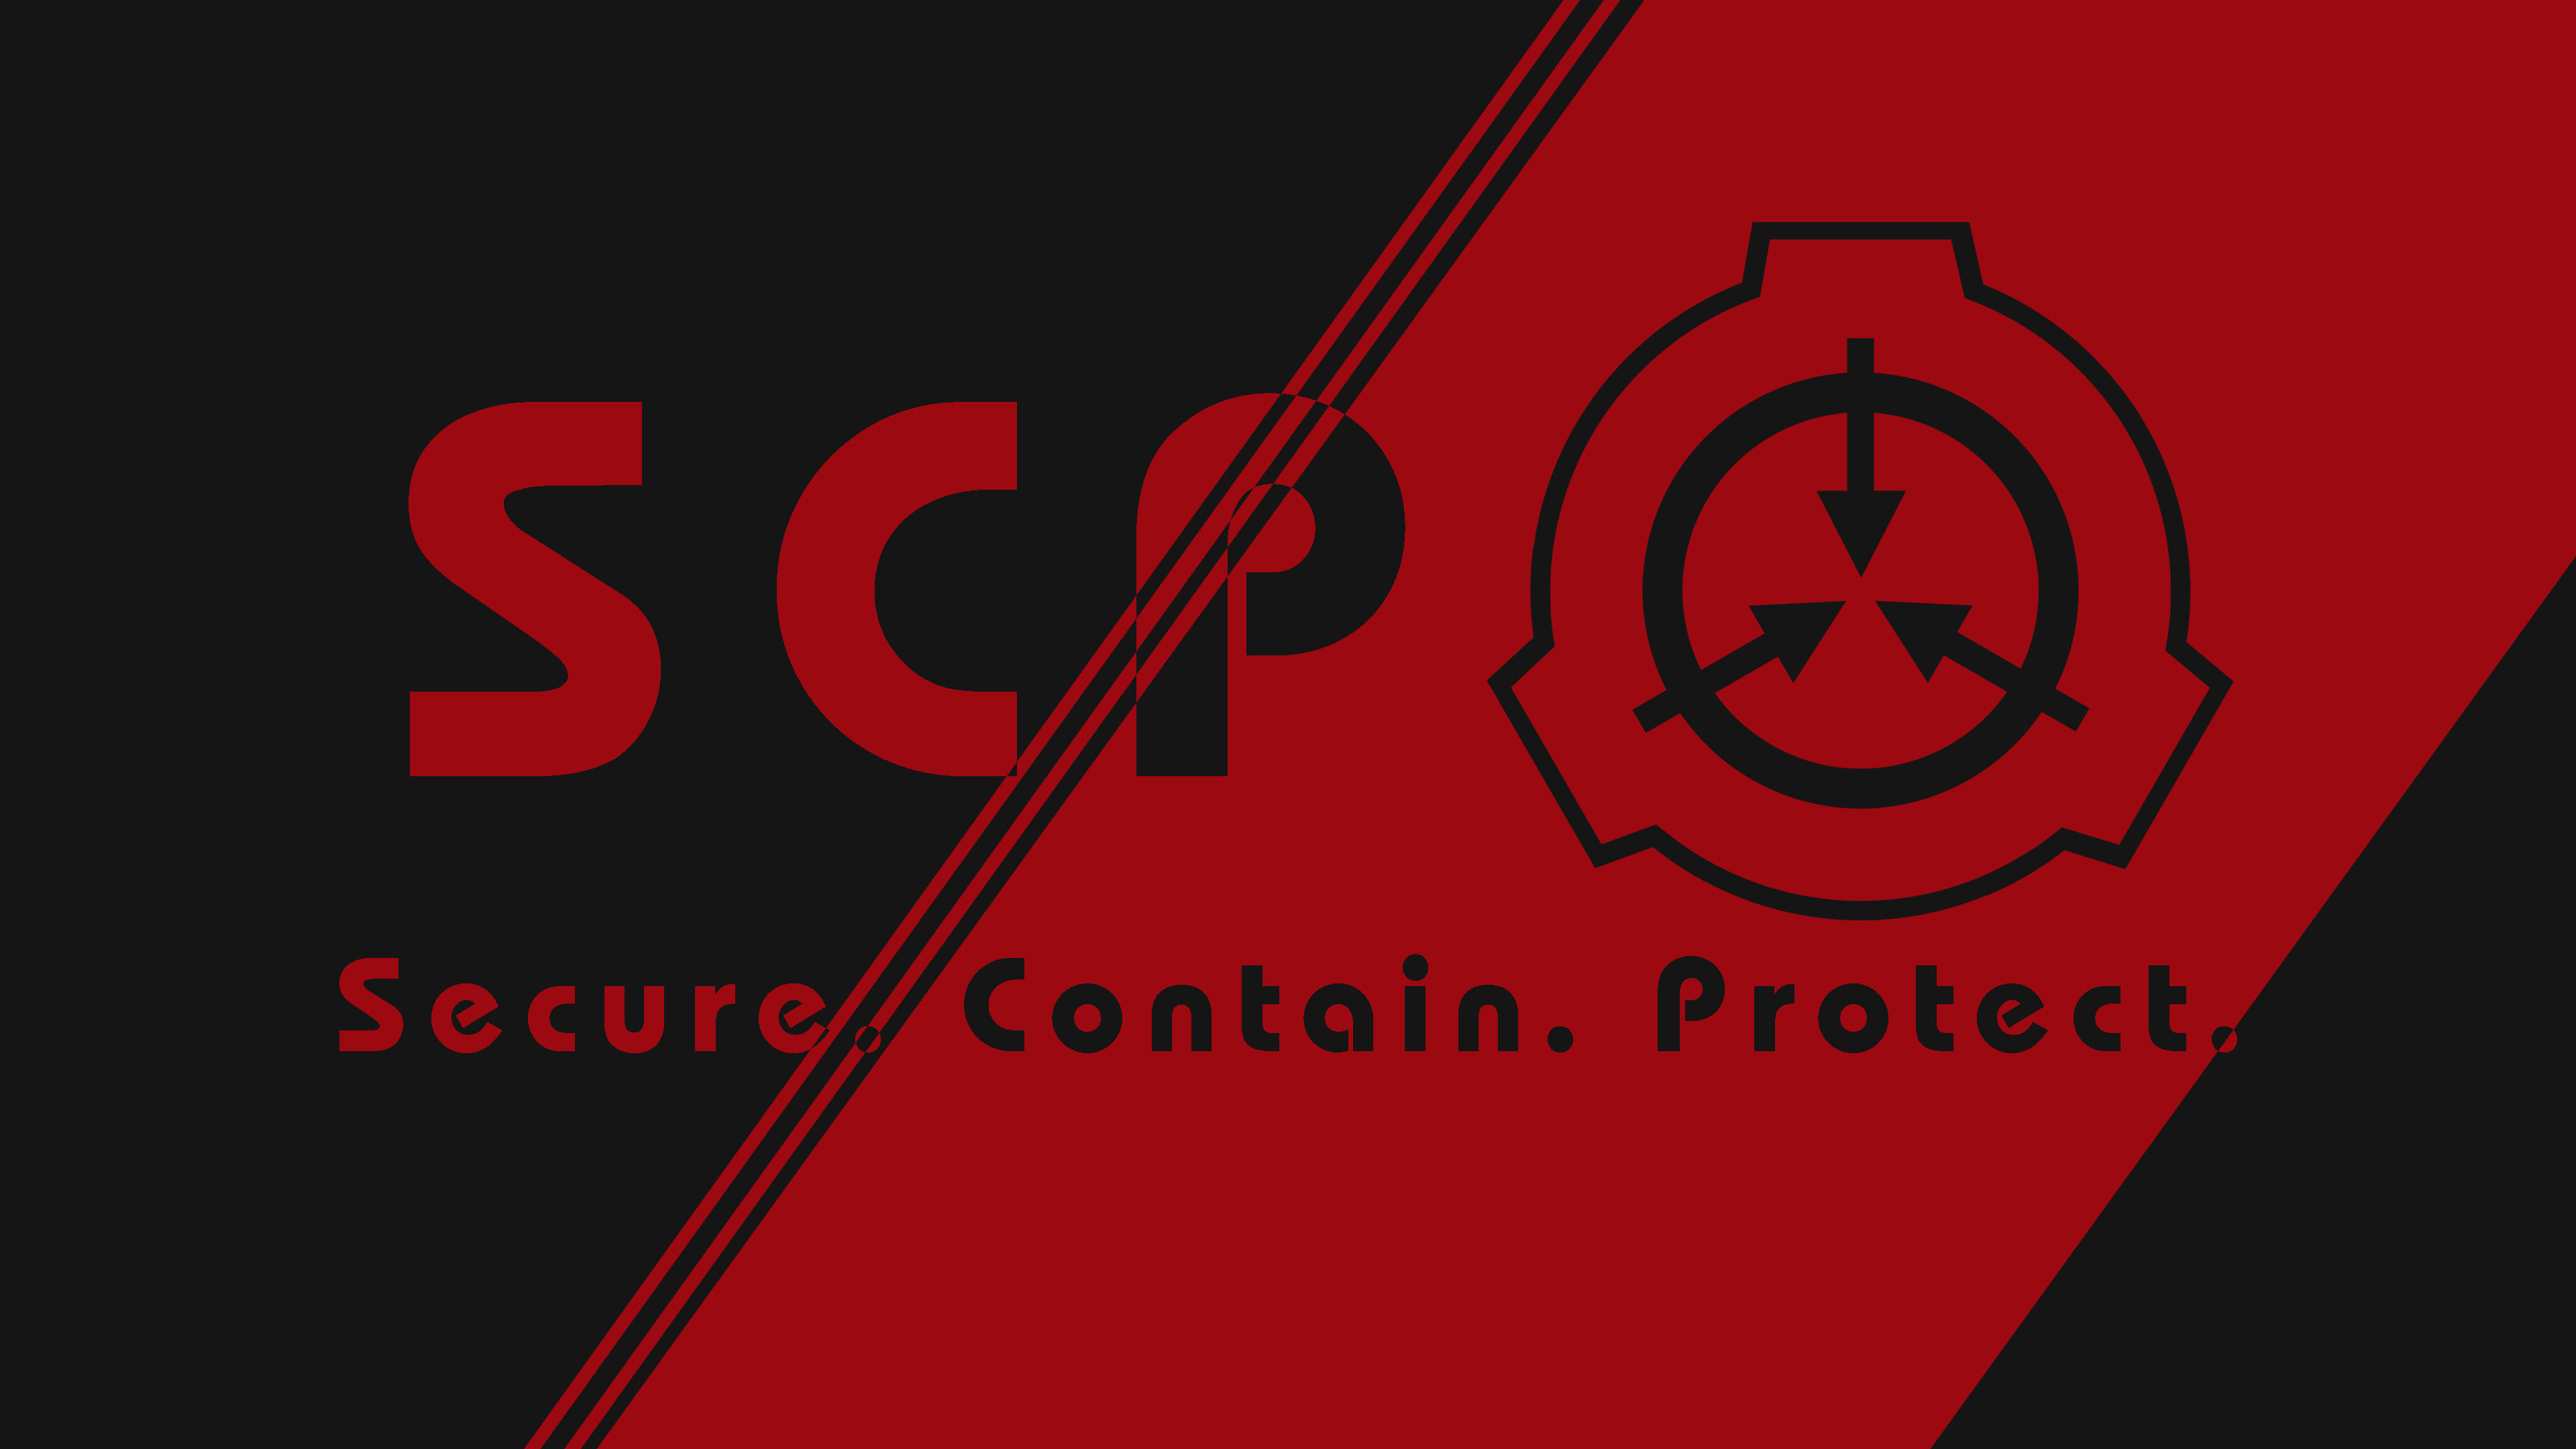 SCP%20red.jpg